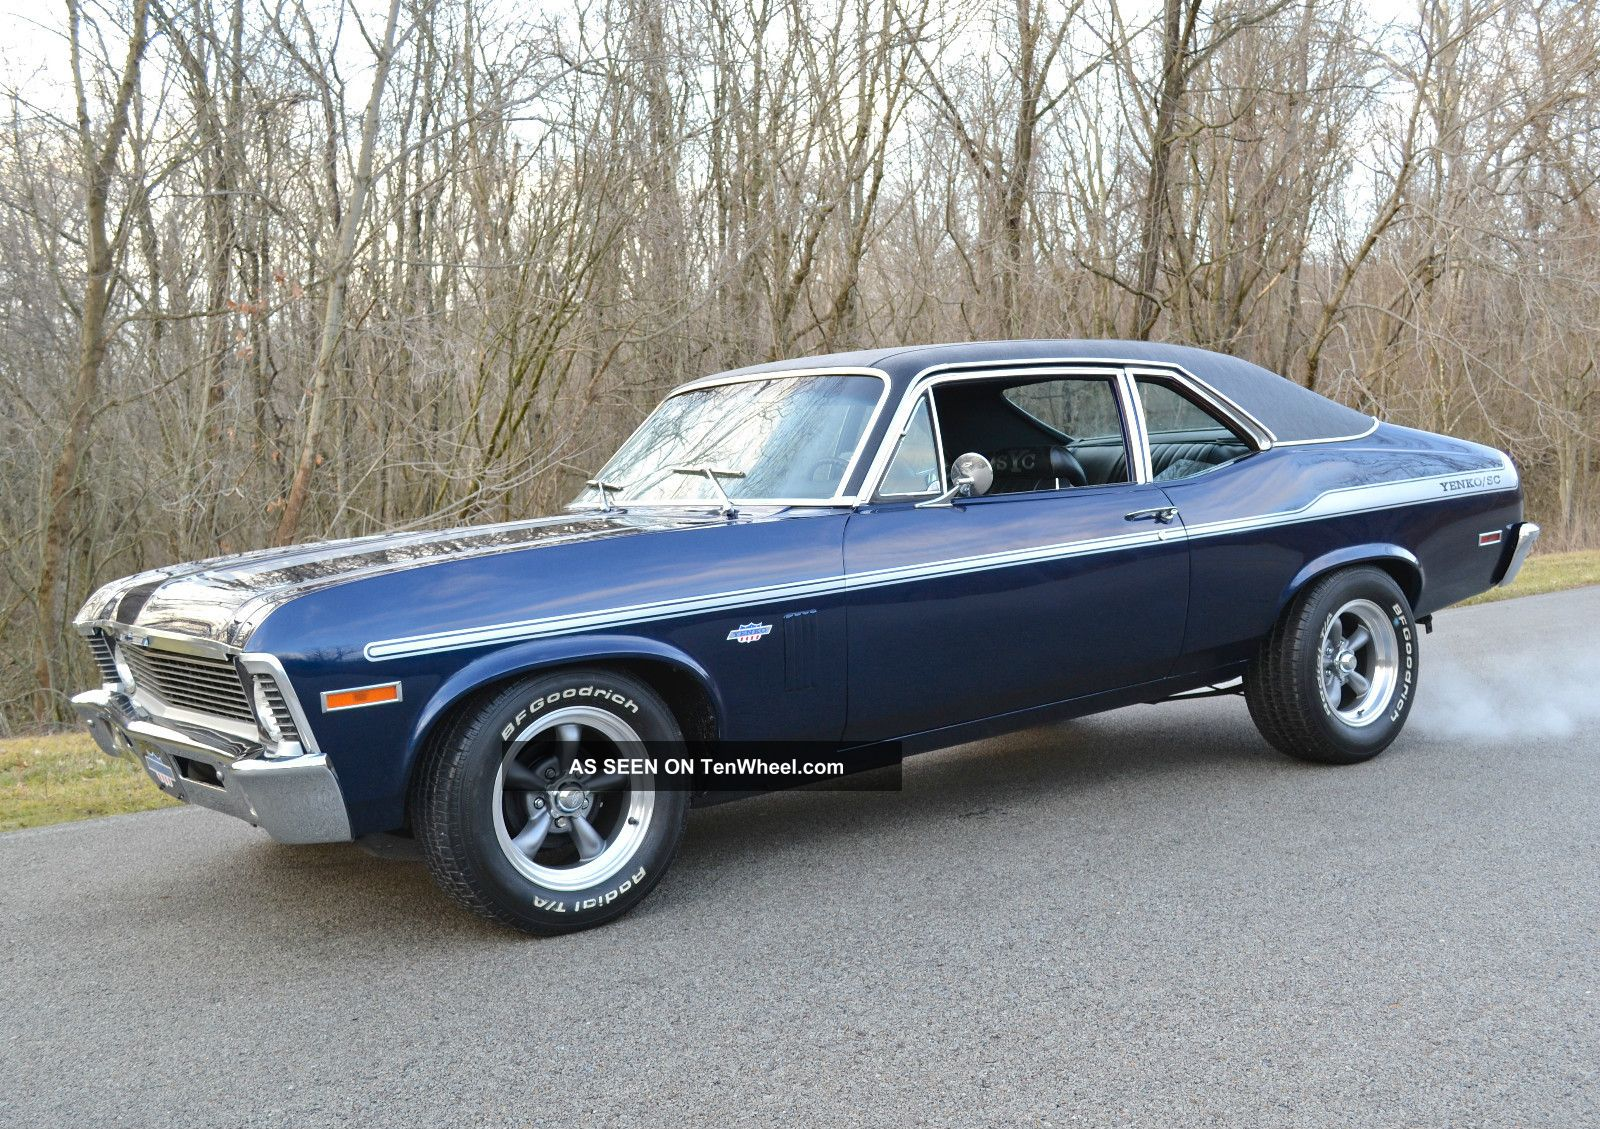 1971 Gmc Sprint likewise Sucp 0008 Chevy Crate Engines Guide further Showthread further 1964 Chevrolet C10 besides 1995 Chevy 350 Head Bolt Torque. on gmc 454 engine specs